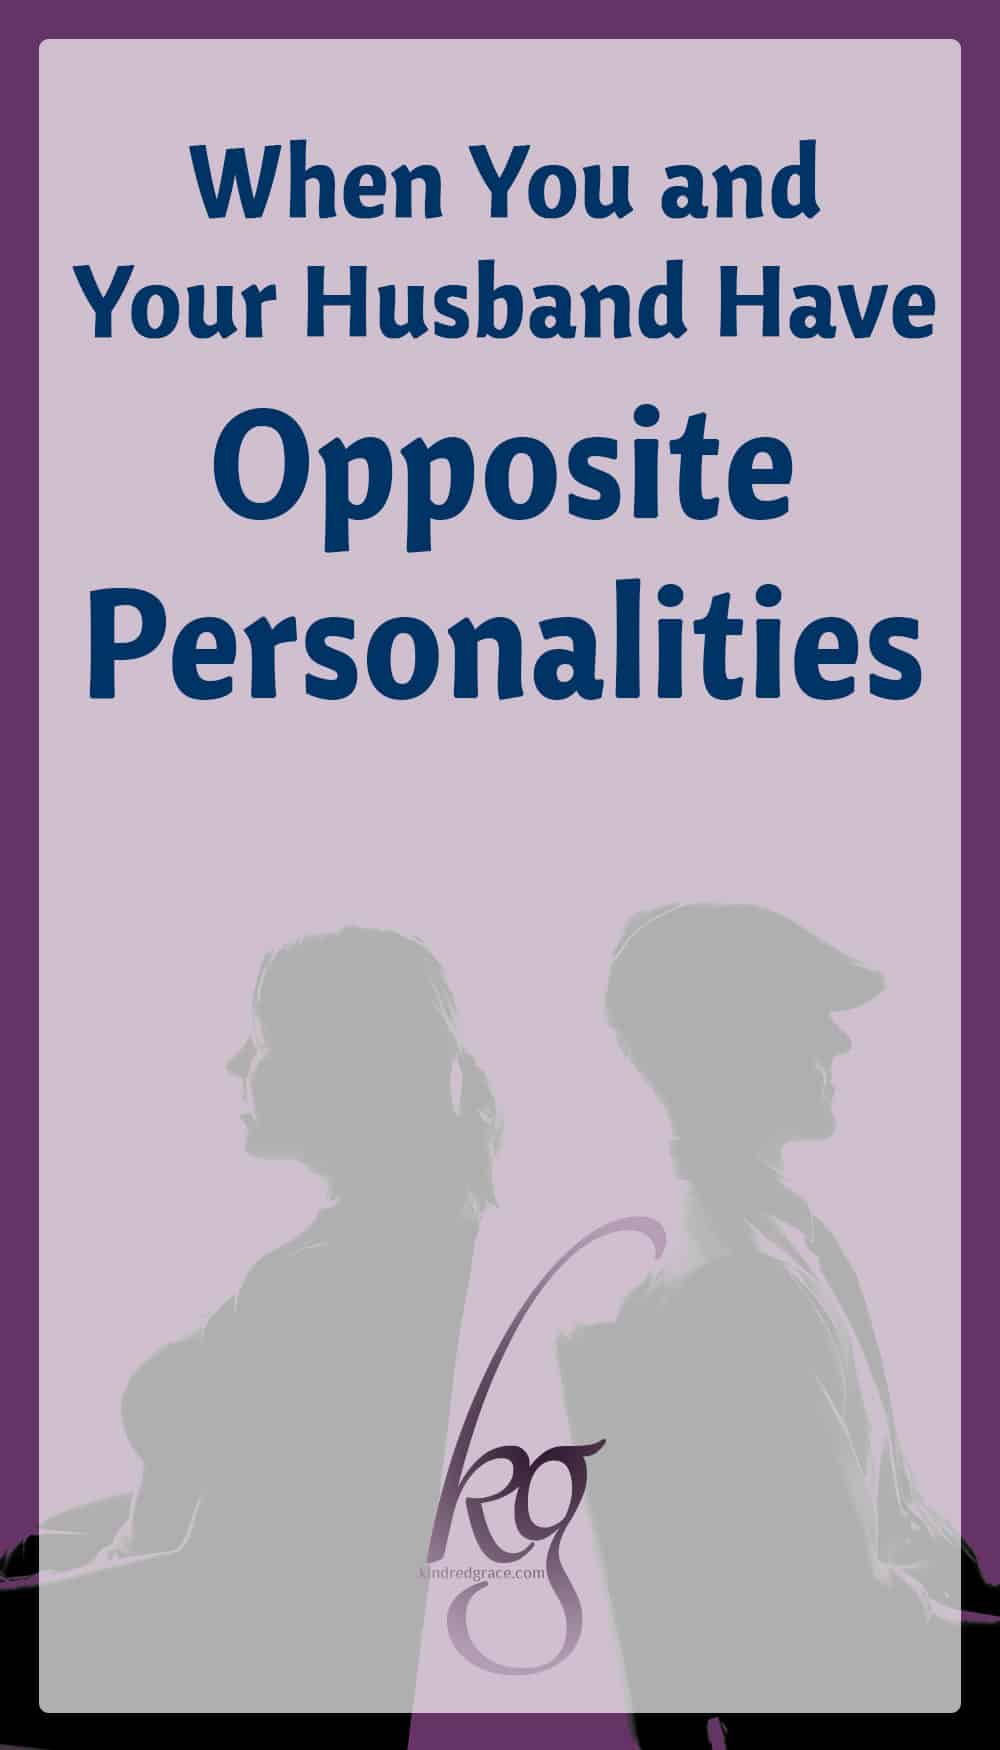 If you're looking to learn more about your own personality, your man's, and how your personalities fit together, Personalities in Love is a resource I highly recommend. I especially appreciate Donna's Biblical viewpoint of how, even though some personalities may clash more than others, personality is a marriage-enhancing element, not a marriage-murdering one. via @KindredGrace